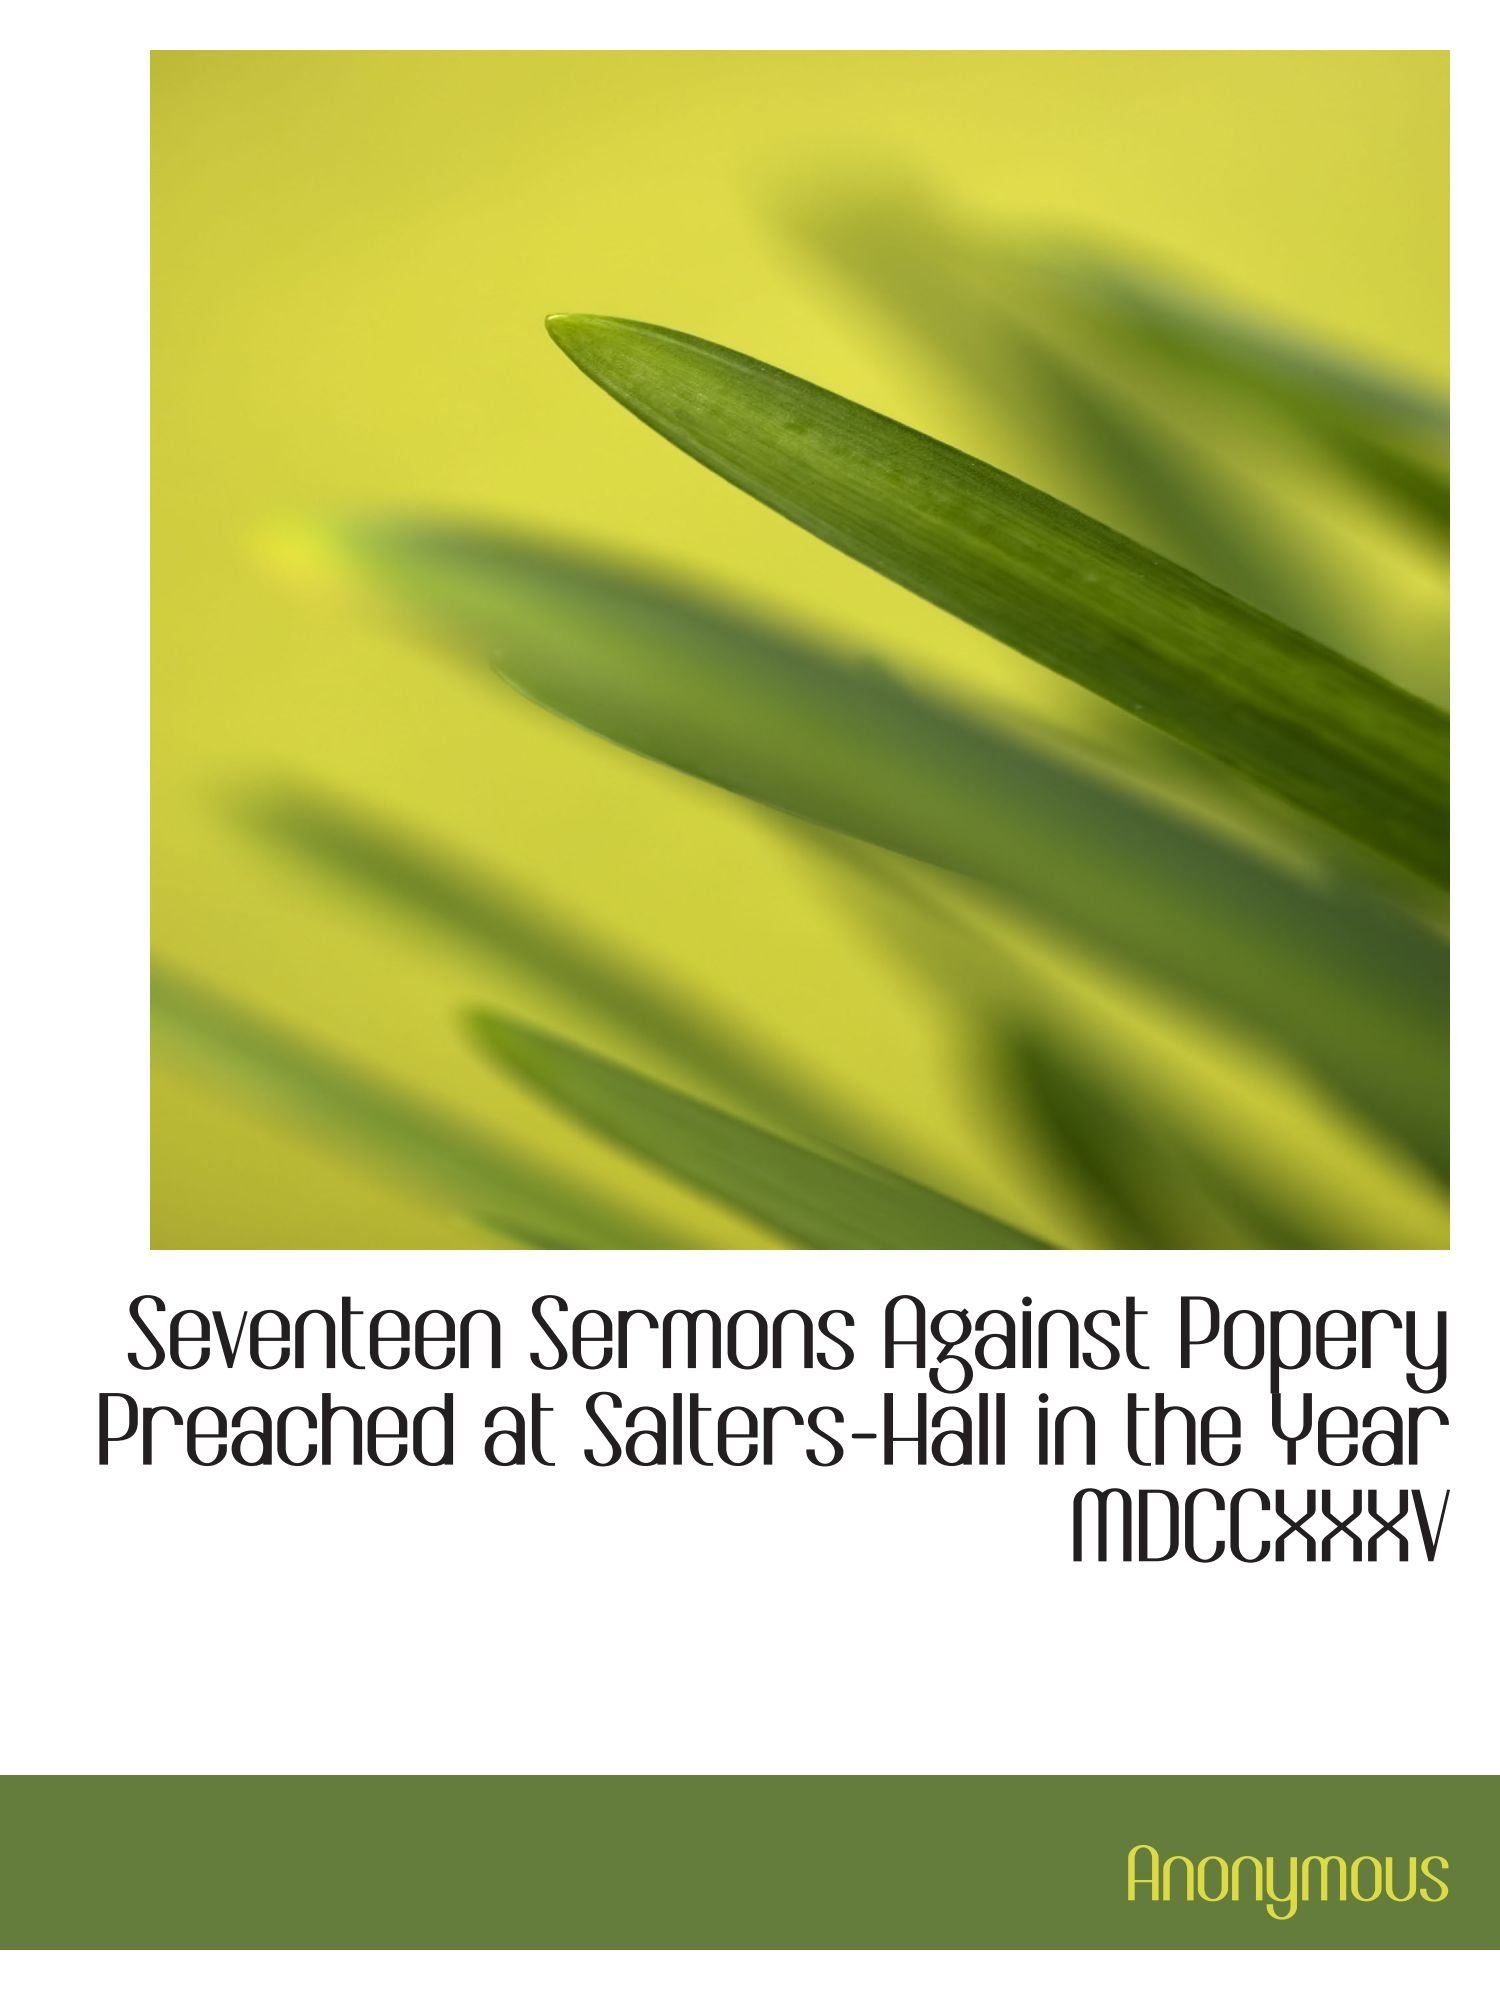 Download Seventeen Sermons Against Popery Preached at Salters-Hall in the Year MDCCXXXV PDF